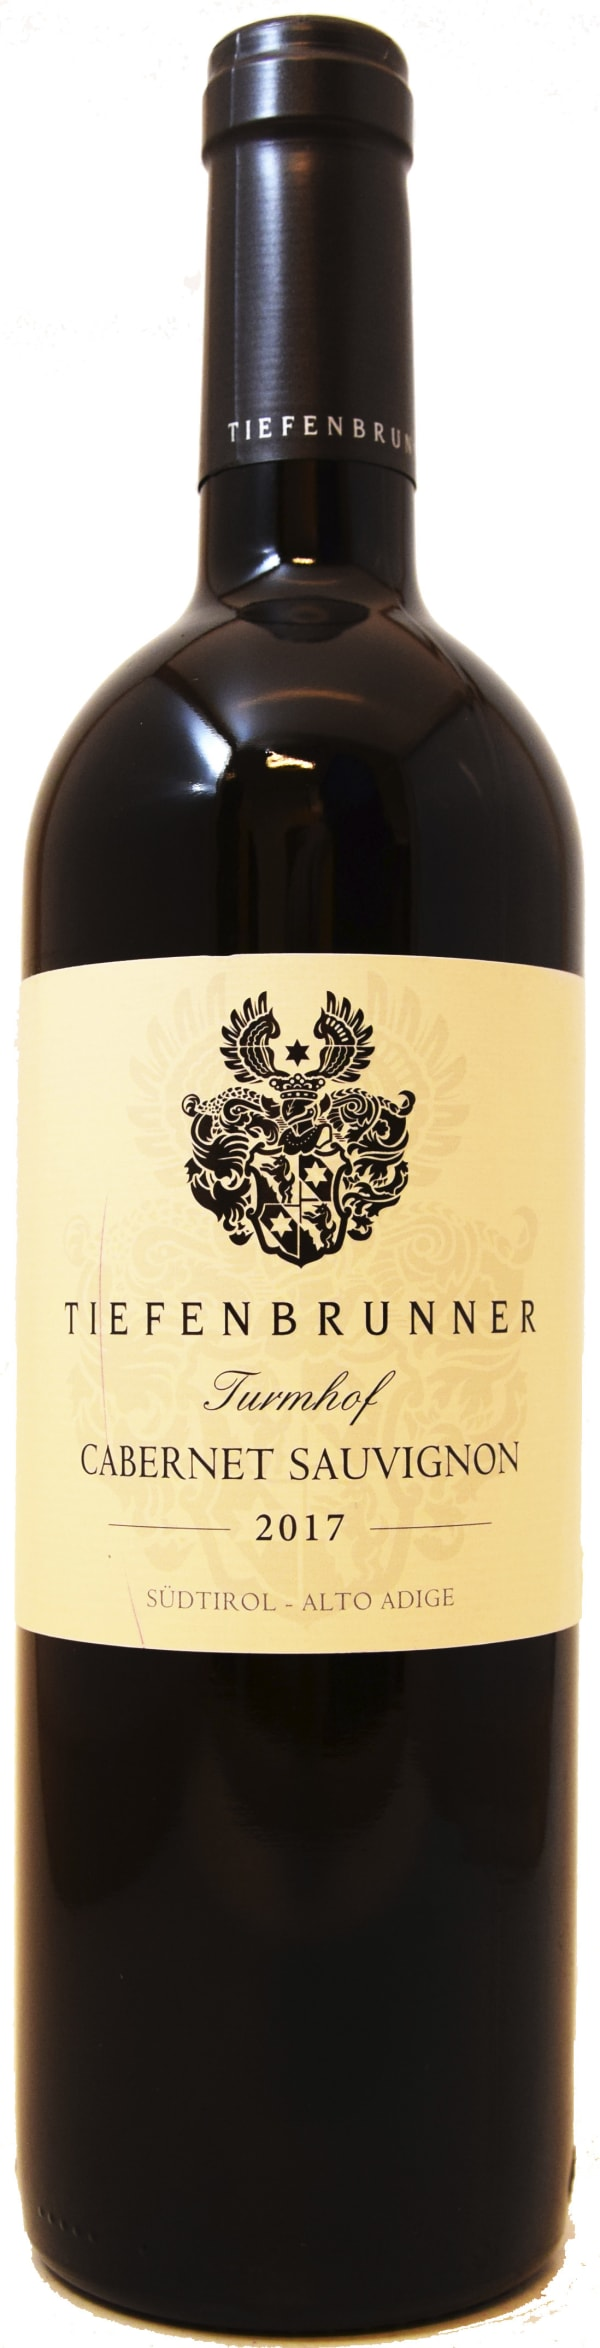 Tiefenbrunner Turmhof Cabernet Sauvignon 2015